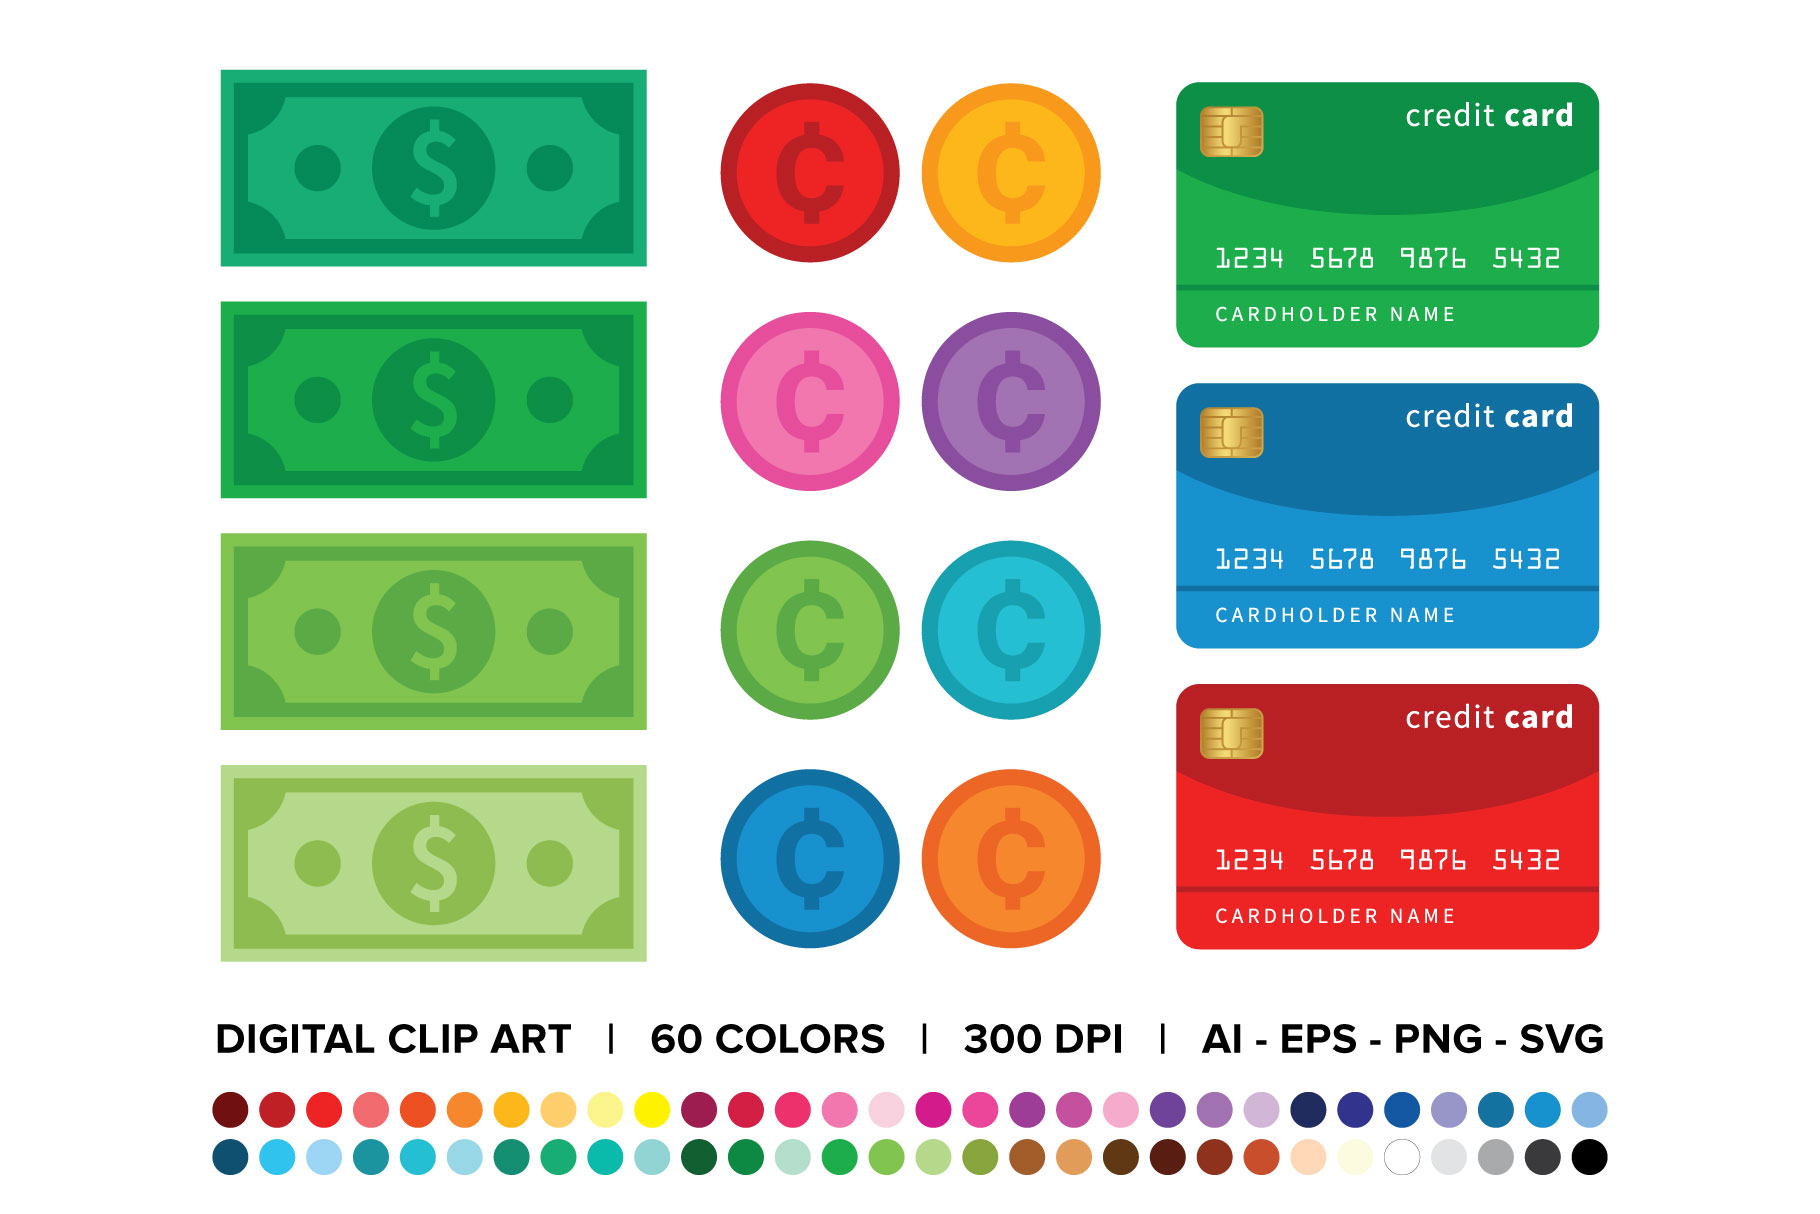 Dollars Cents Credit Cards Clip Art Graphic By Running With Foxes Creative Fabrica